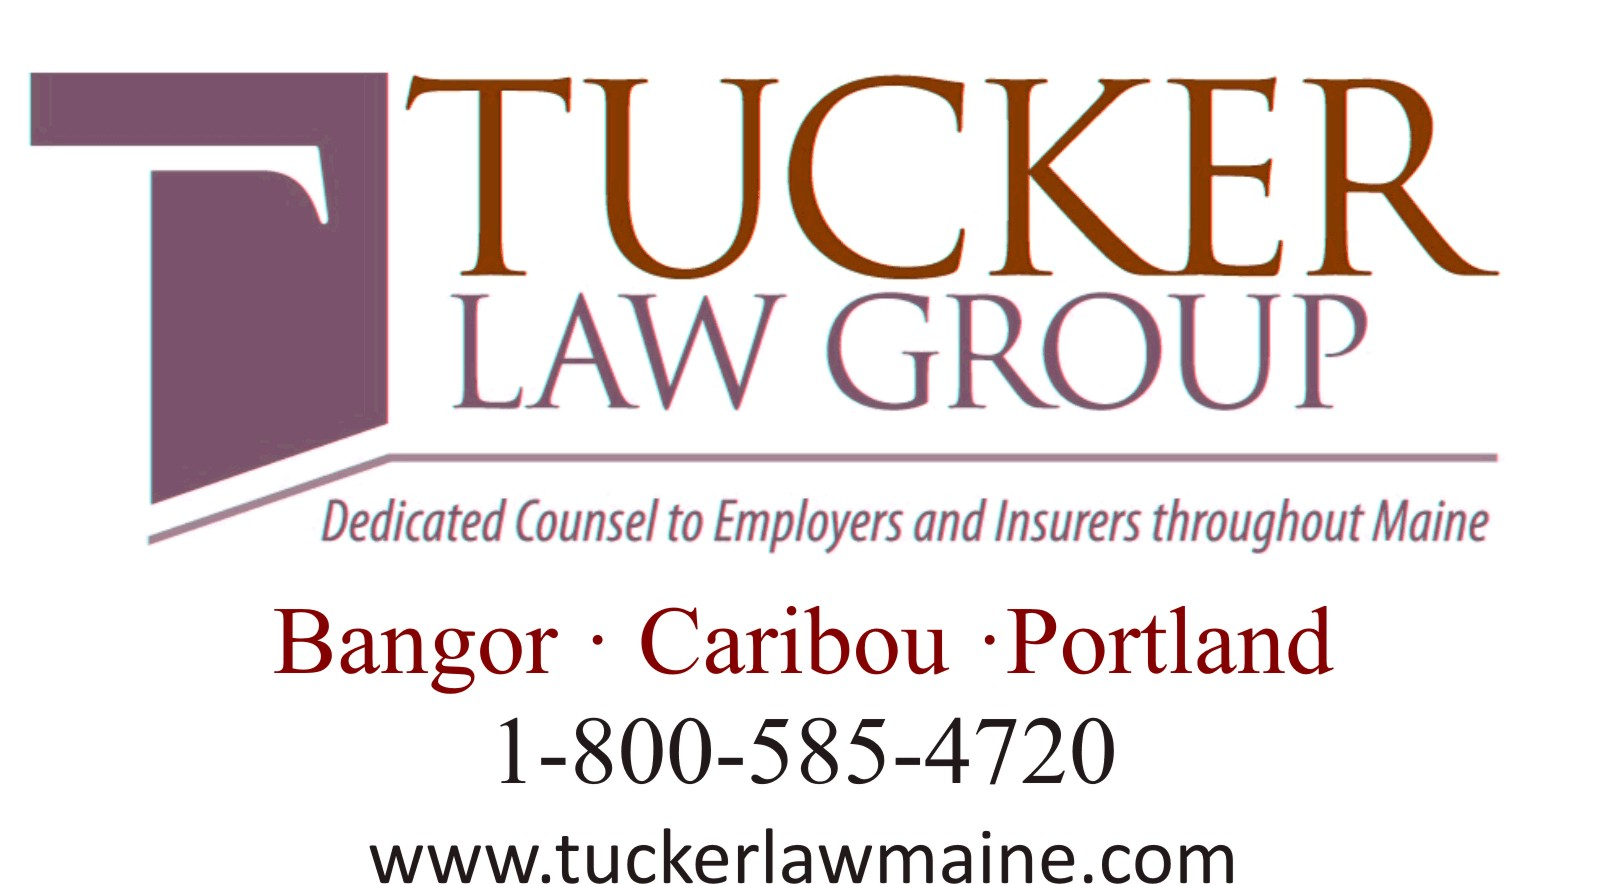 TUCKER LAW GROUP